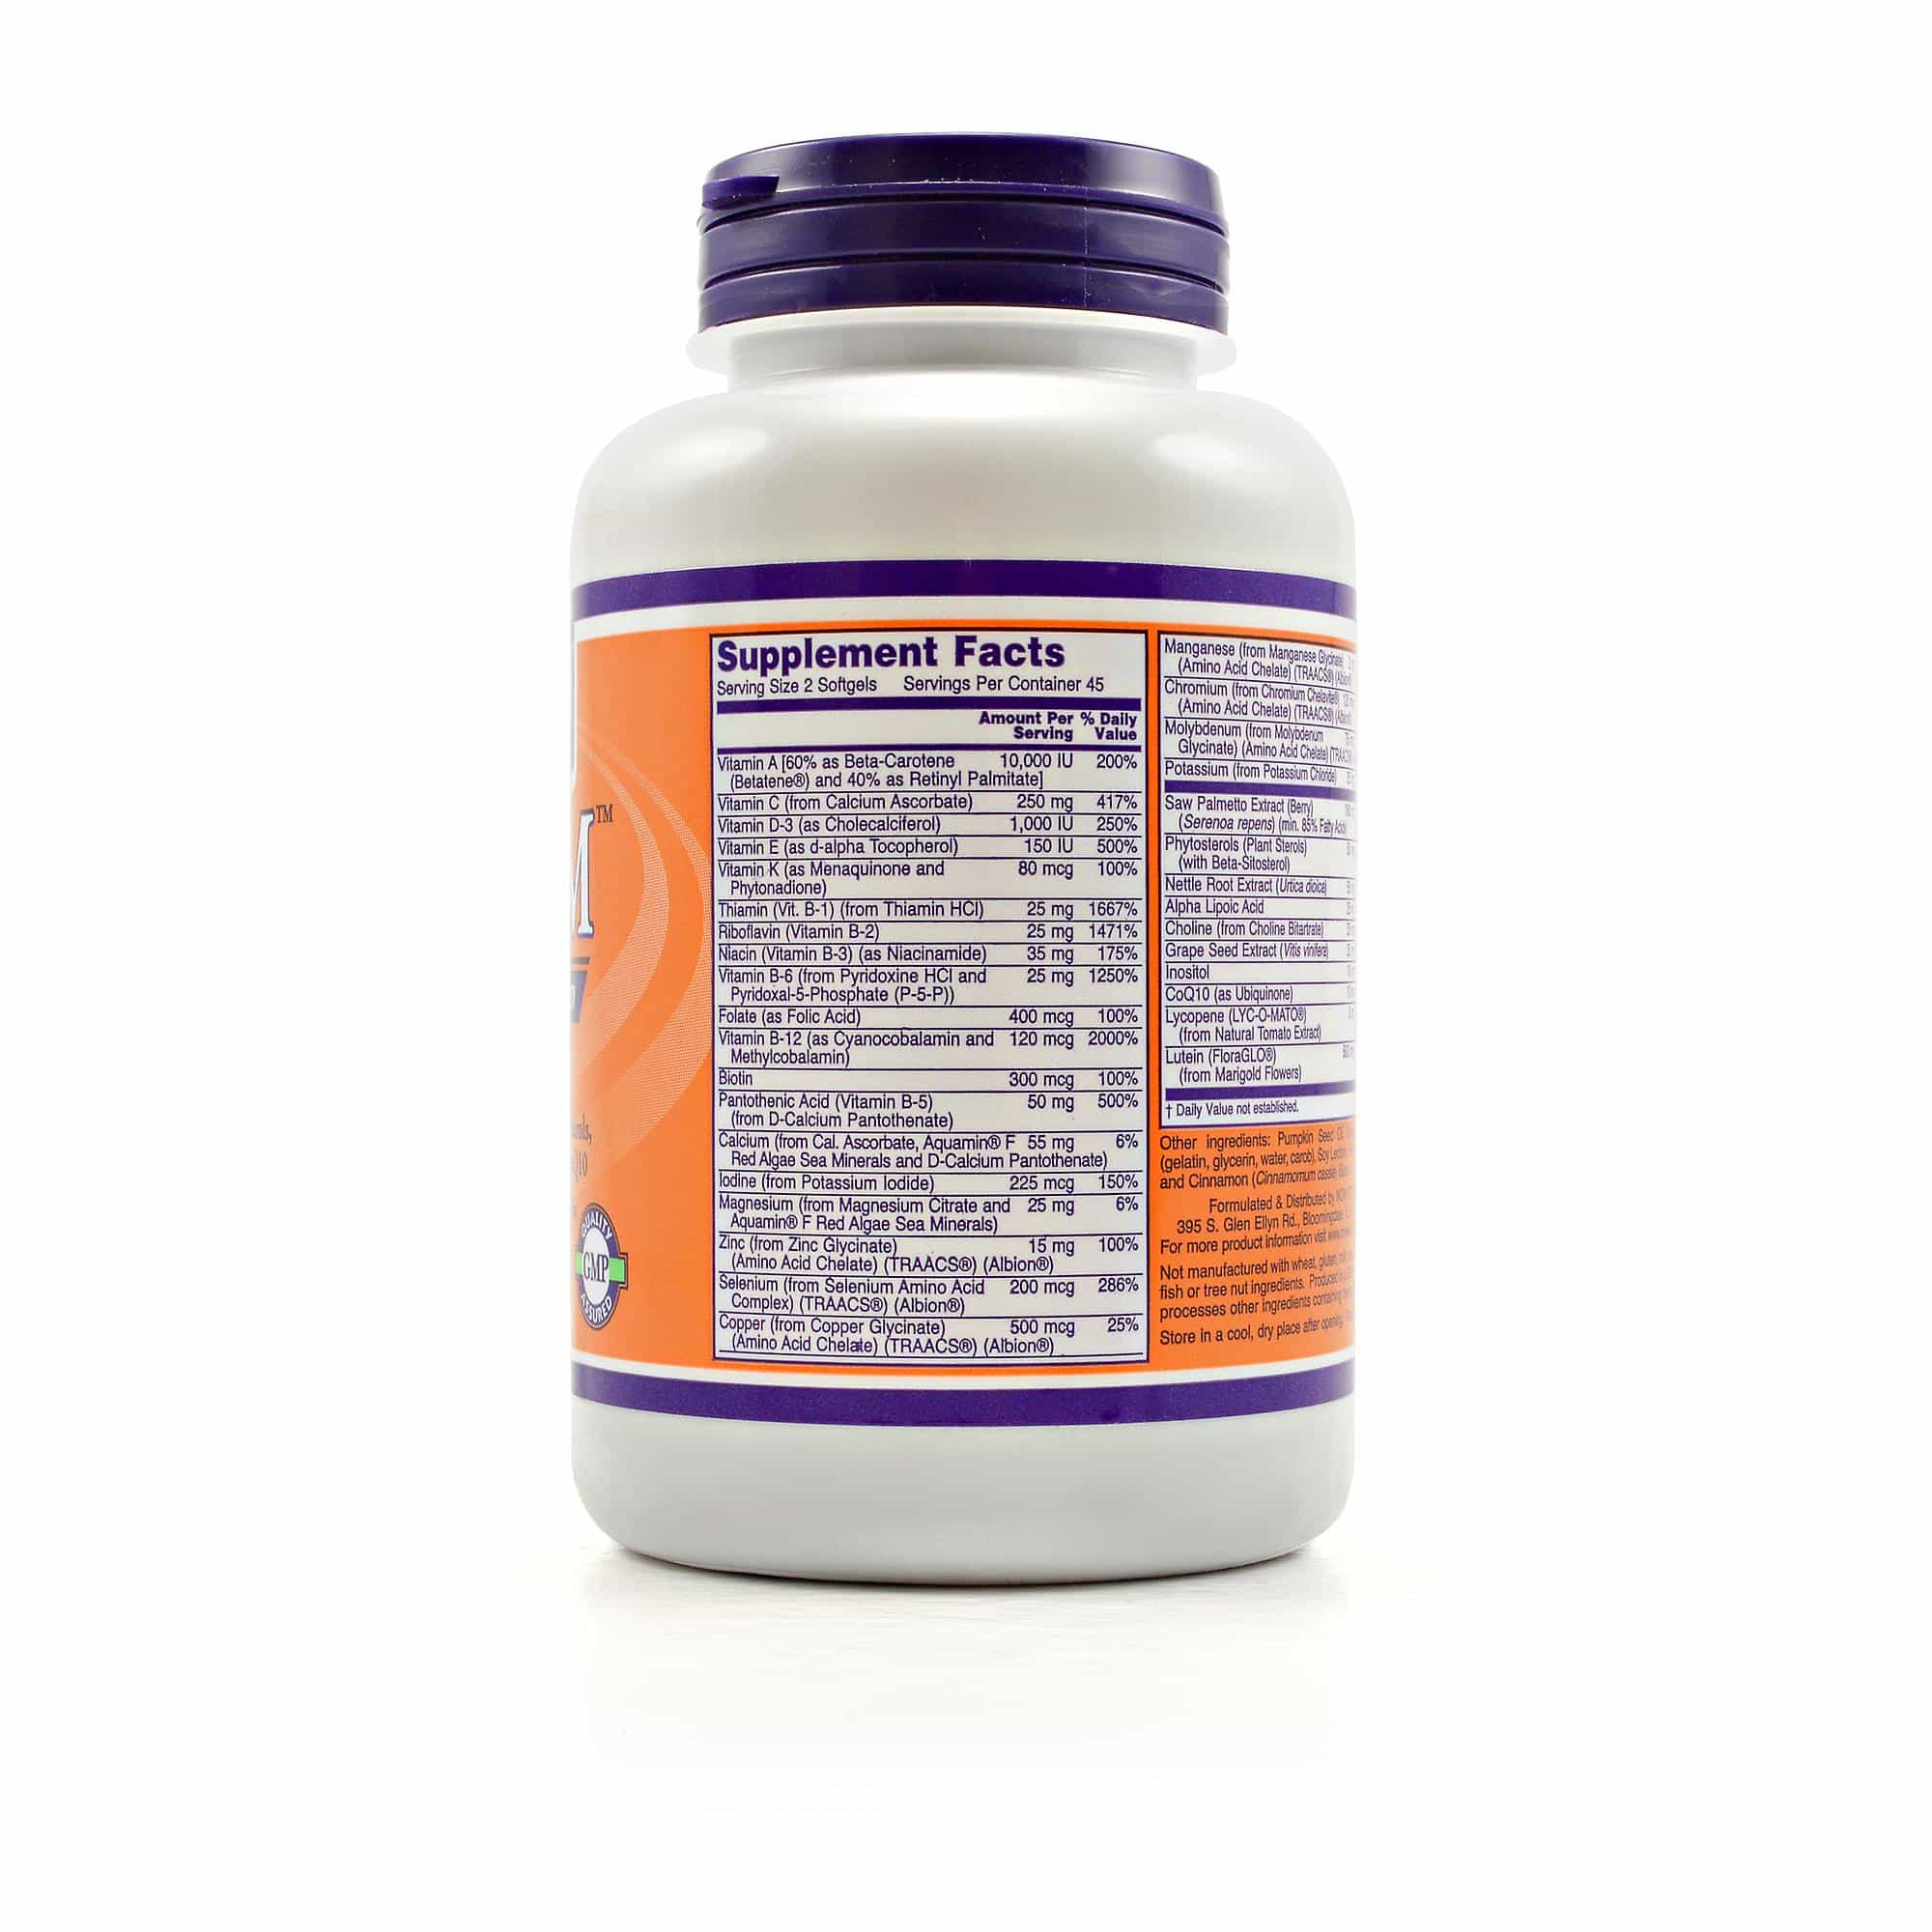 NOW Foods ADAM nutrition label